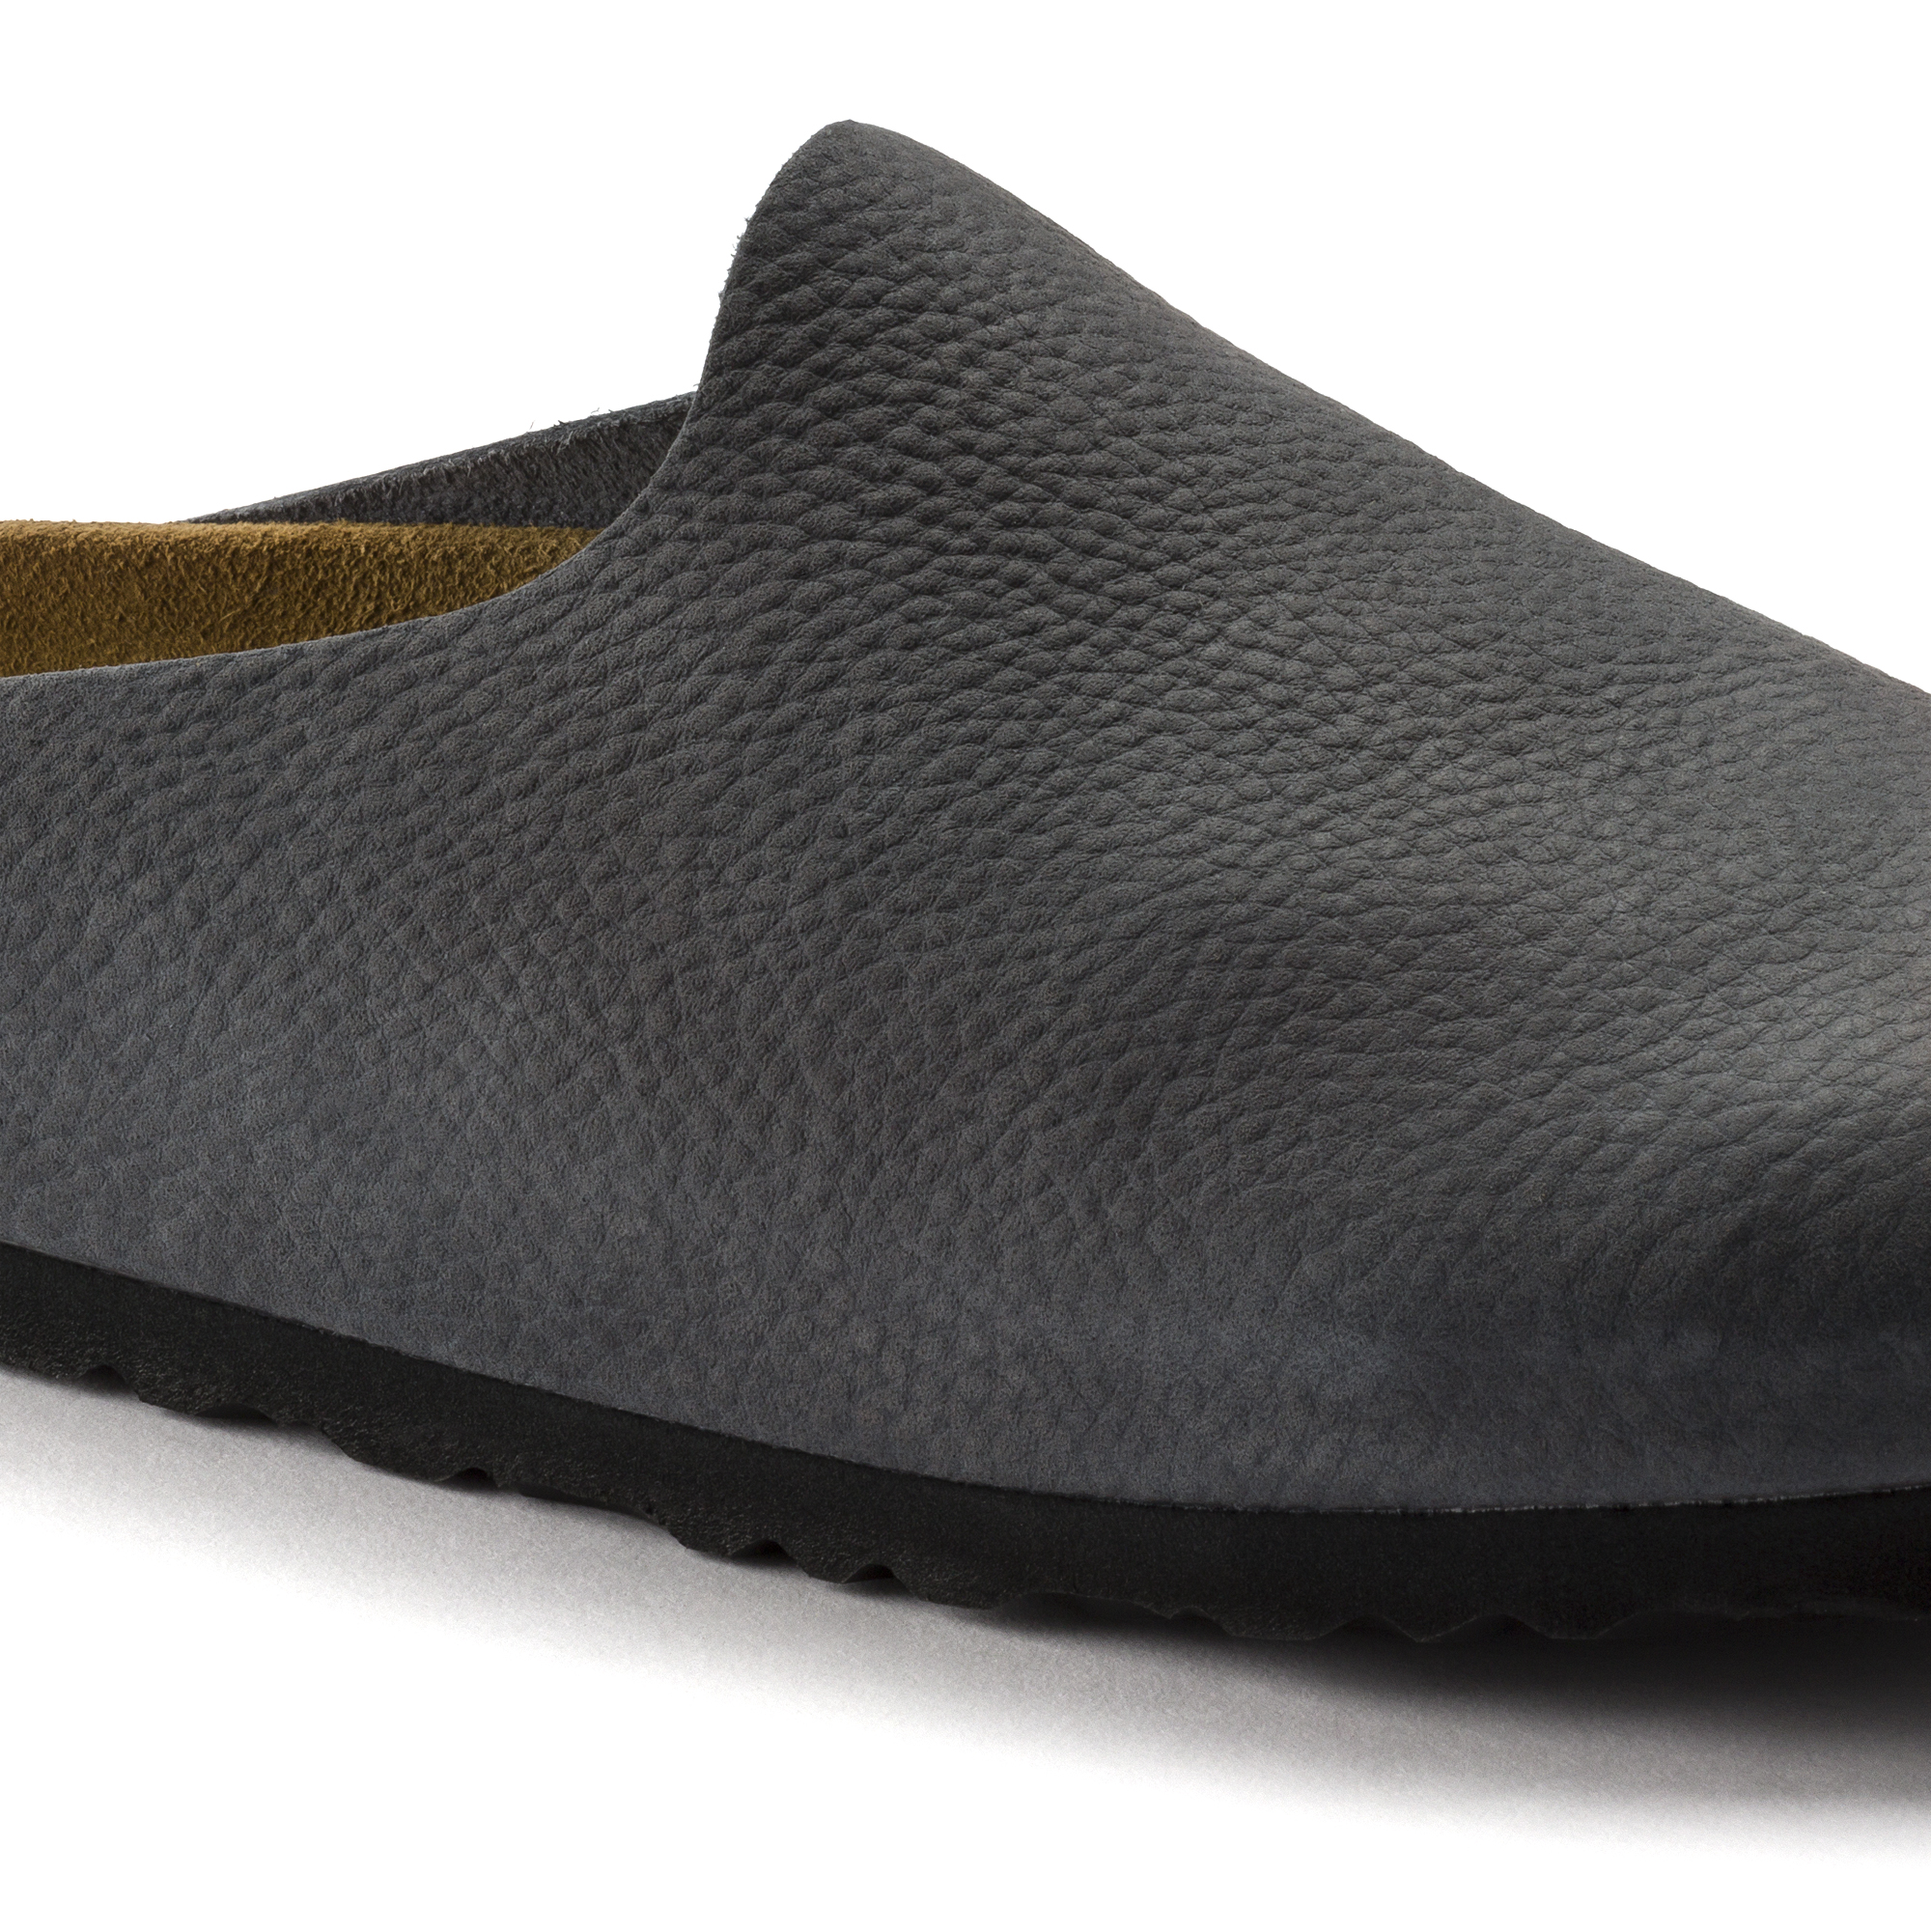 dcf7c8a7f9c0 ... Amsterdam Nubuck Leather Steer Anthracite ...